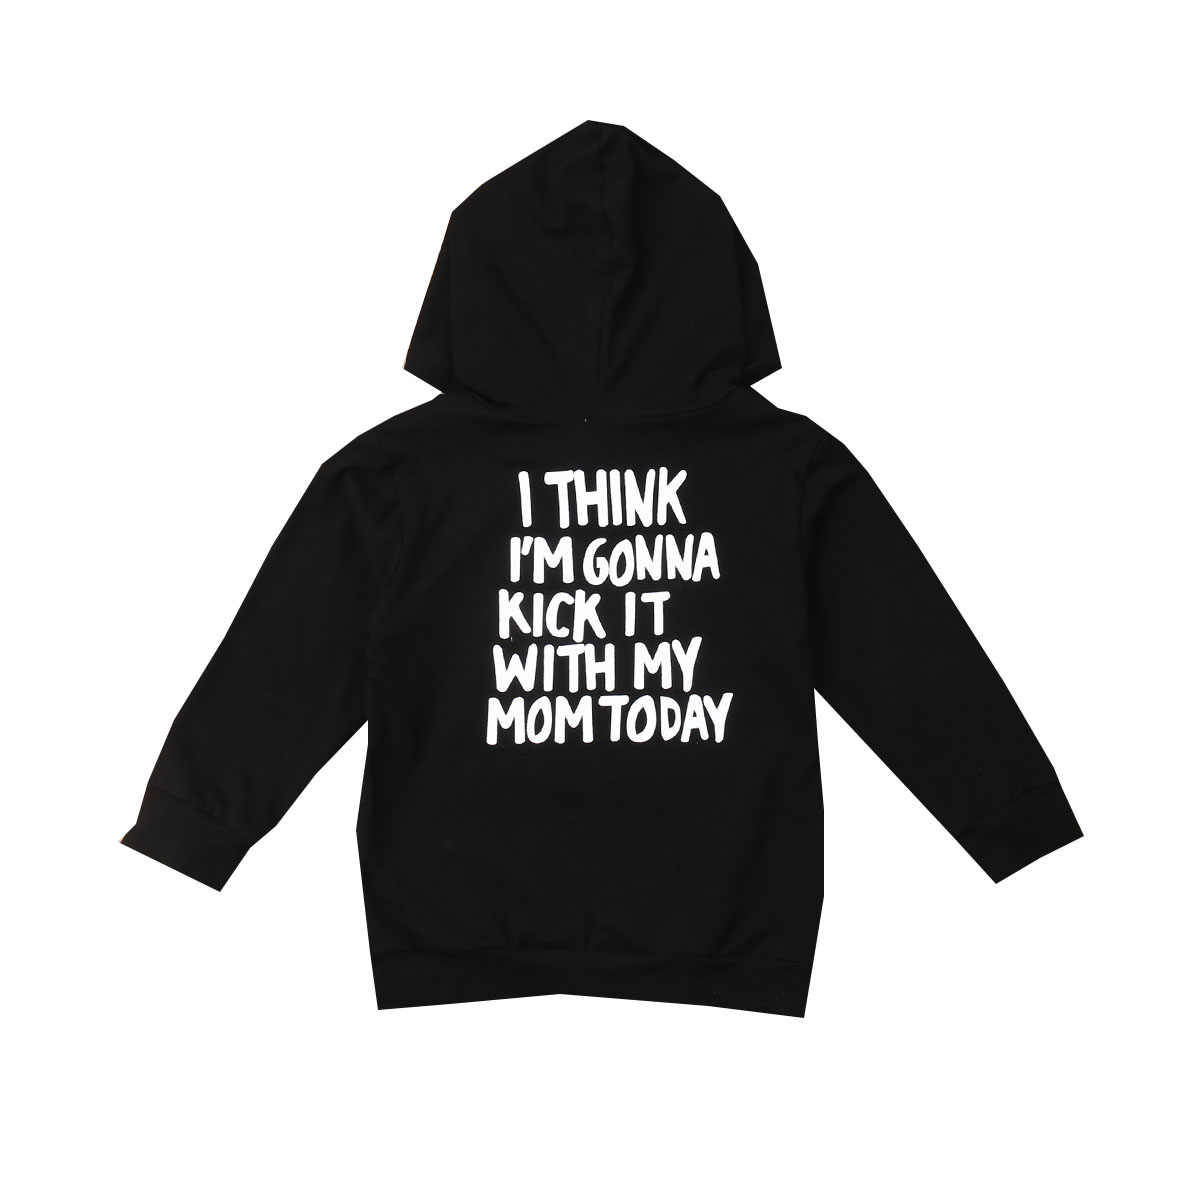 1-6Y Fashion Toddler Baby Girls Boys Hoodies Tops Long Sleeve Black Hooded Letter Print Pullover Tops